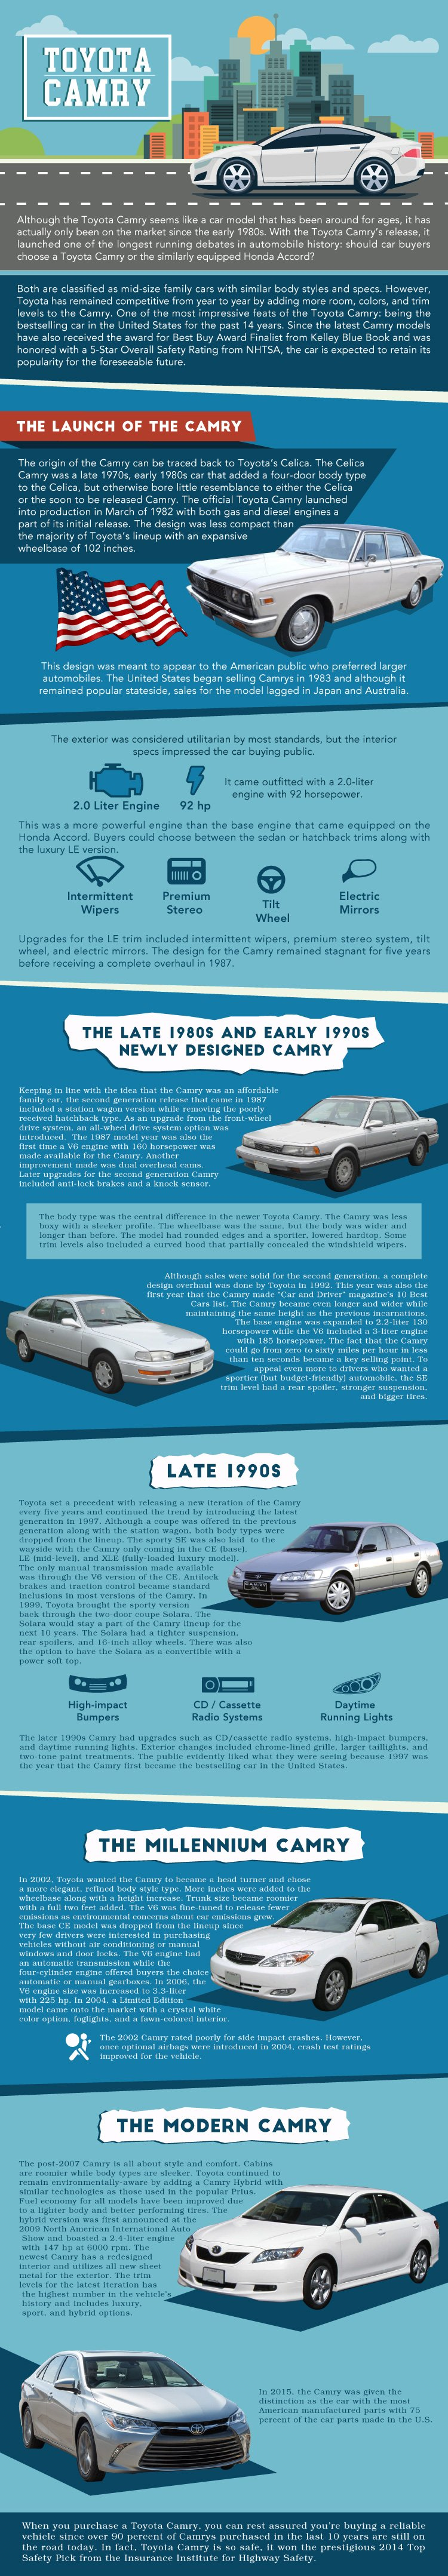 History of the Toyota Camry